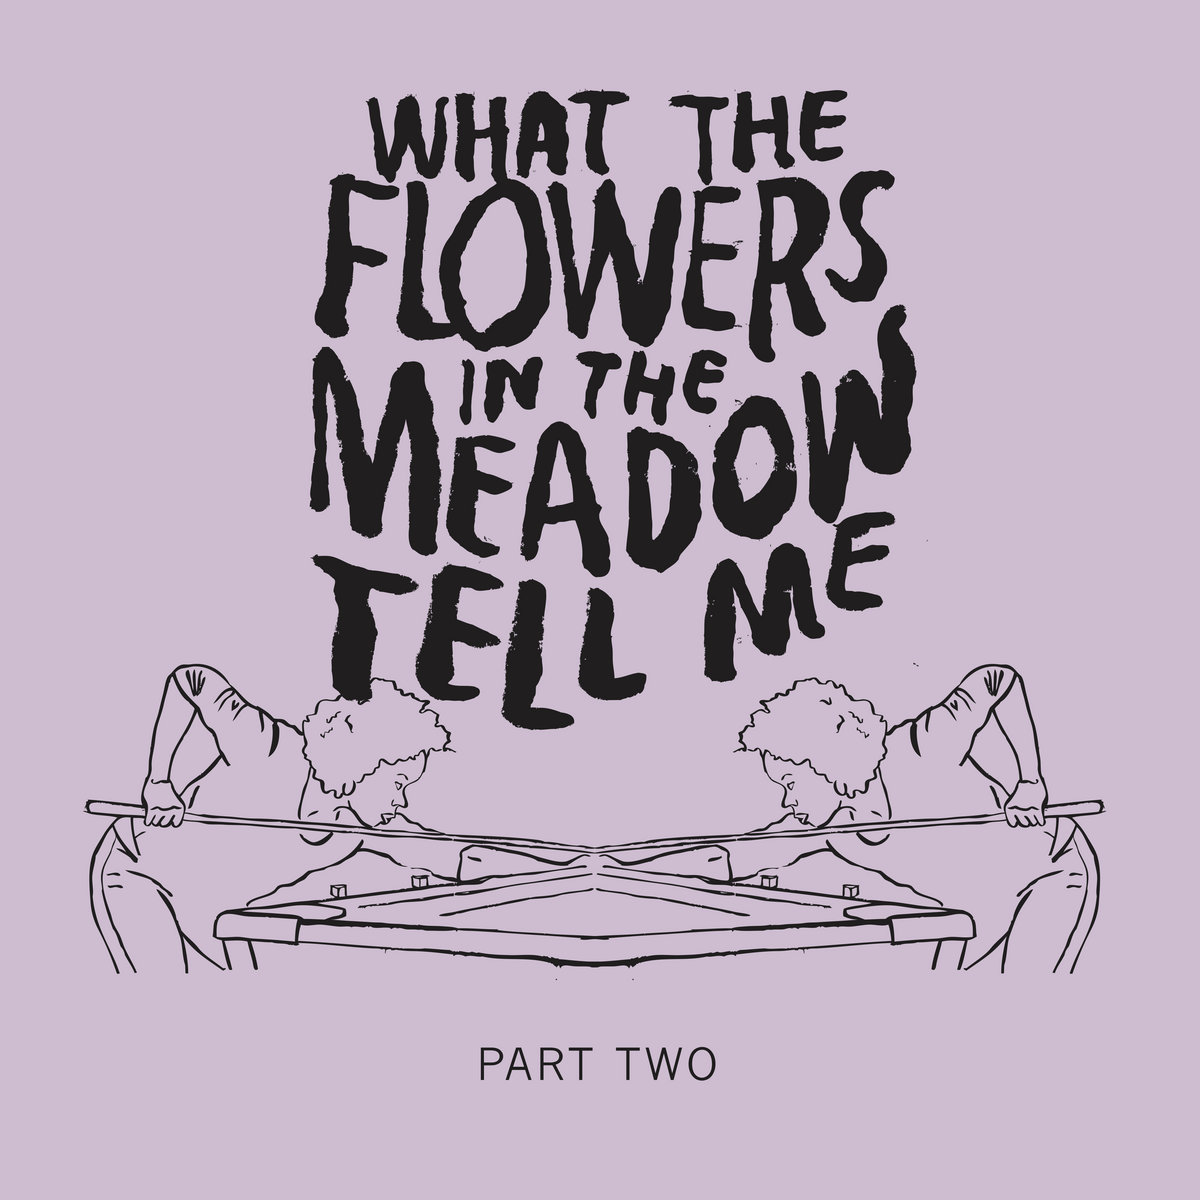 Ep. 3 | What the Flowers in the Meadow Tell Me (Part 2) by The Fruit Stare